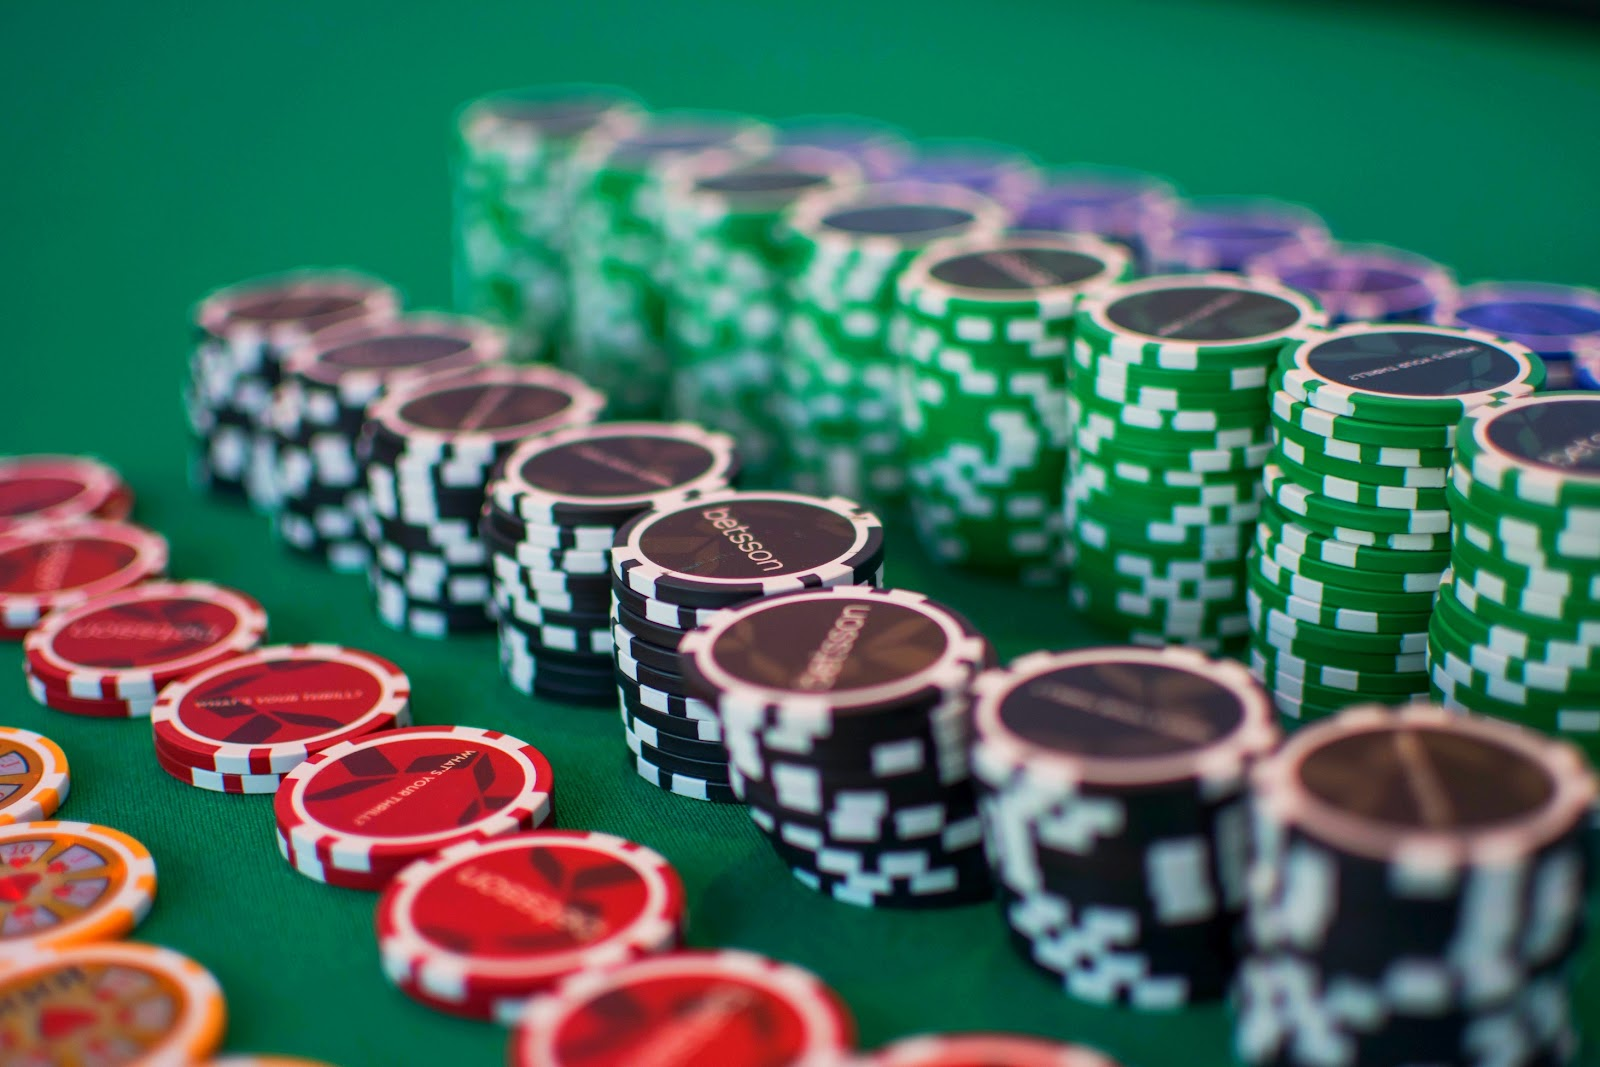 Rows of orange, red, black, green, and blue gambling chips sit on a green betting table